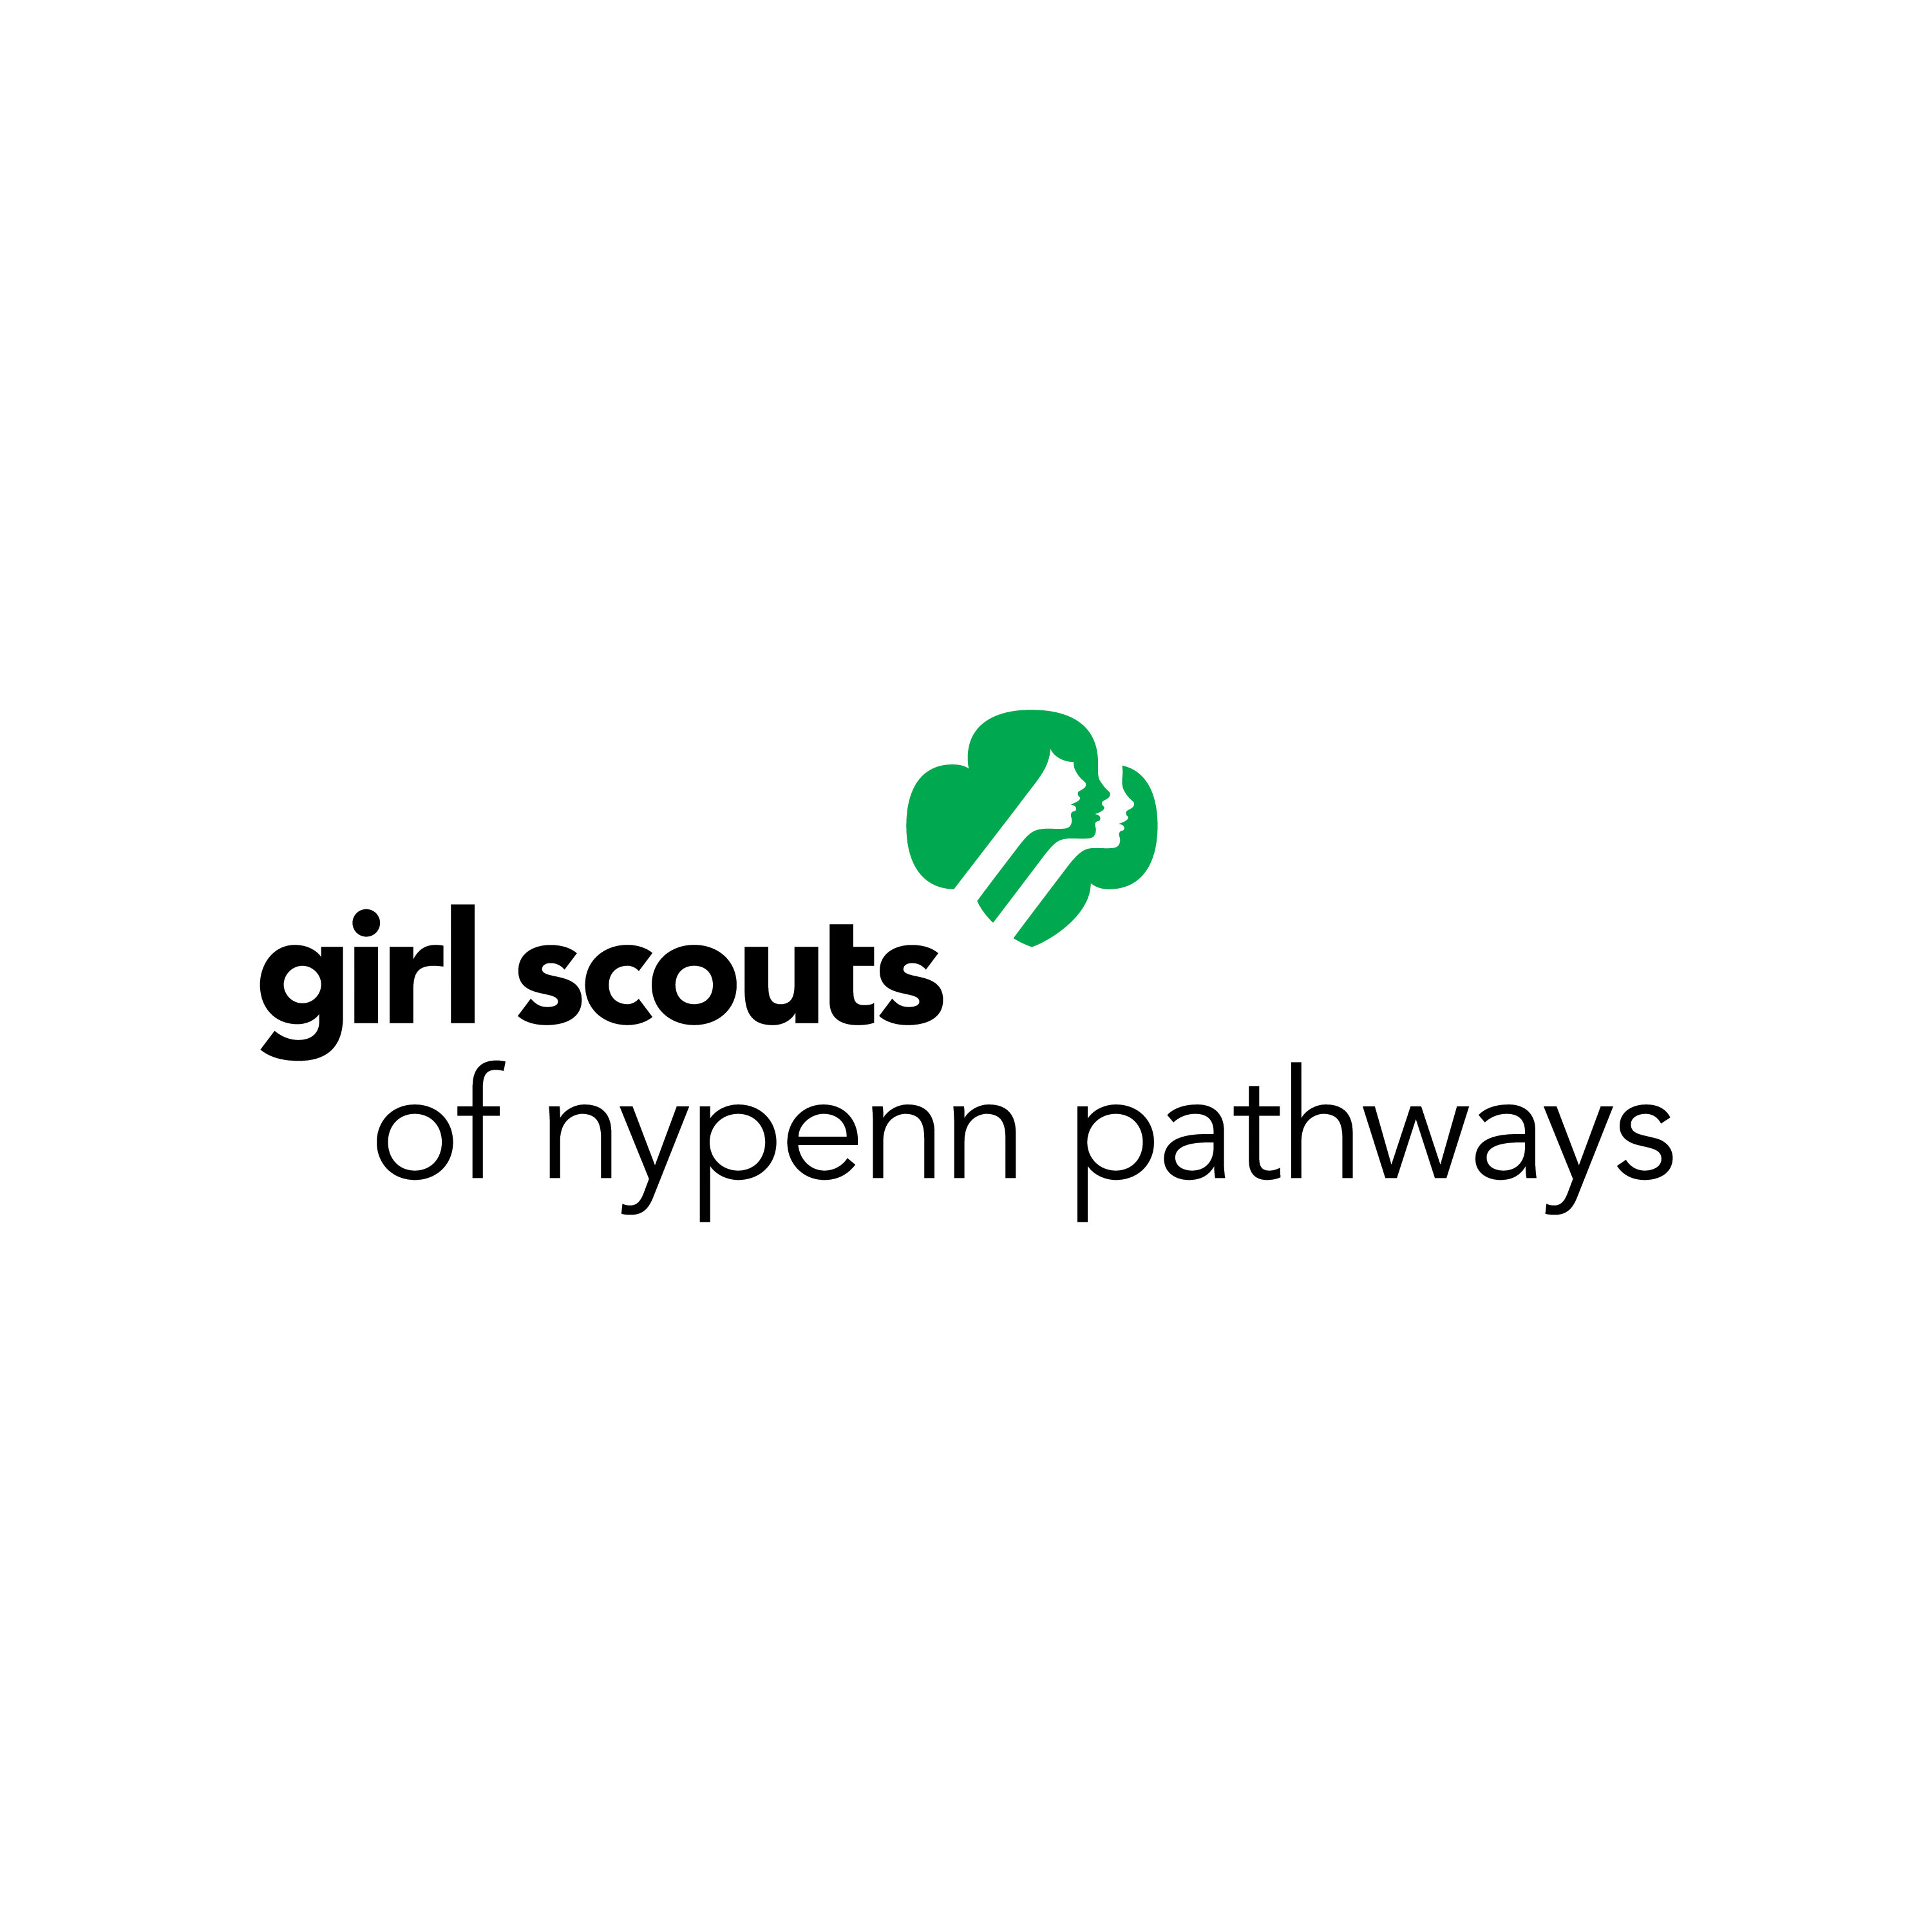 image regarding Girl Scout Cookie Thank You Notes Printable named Lady Scouts of NYPENN Pathways